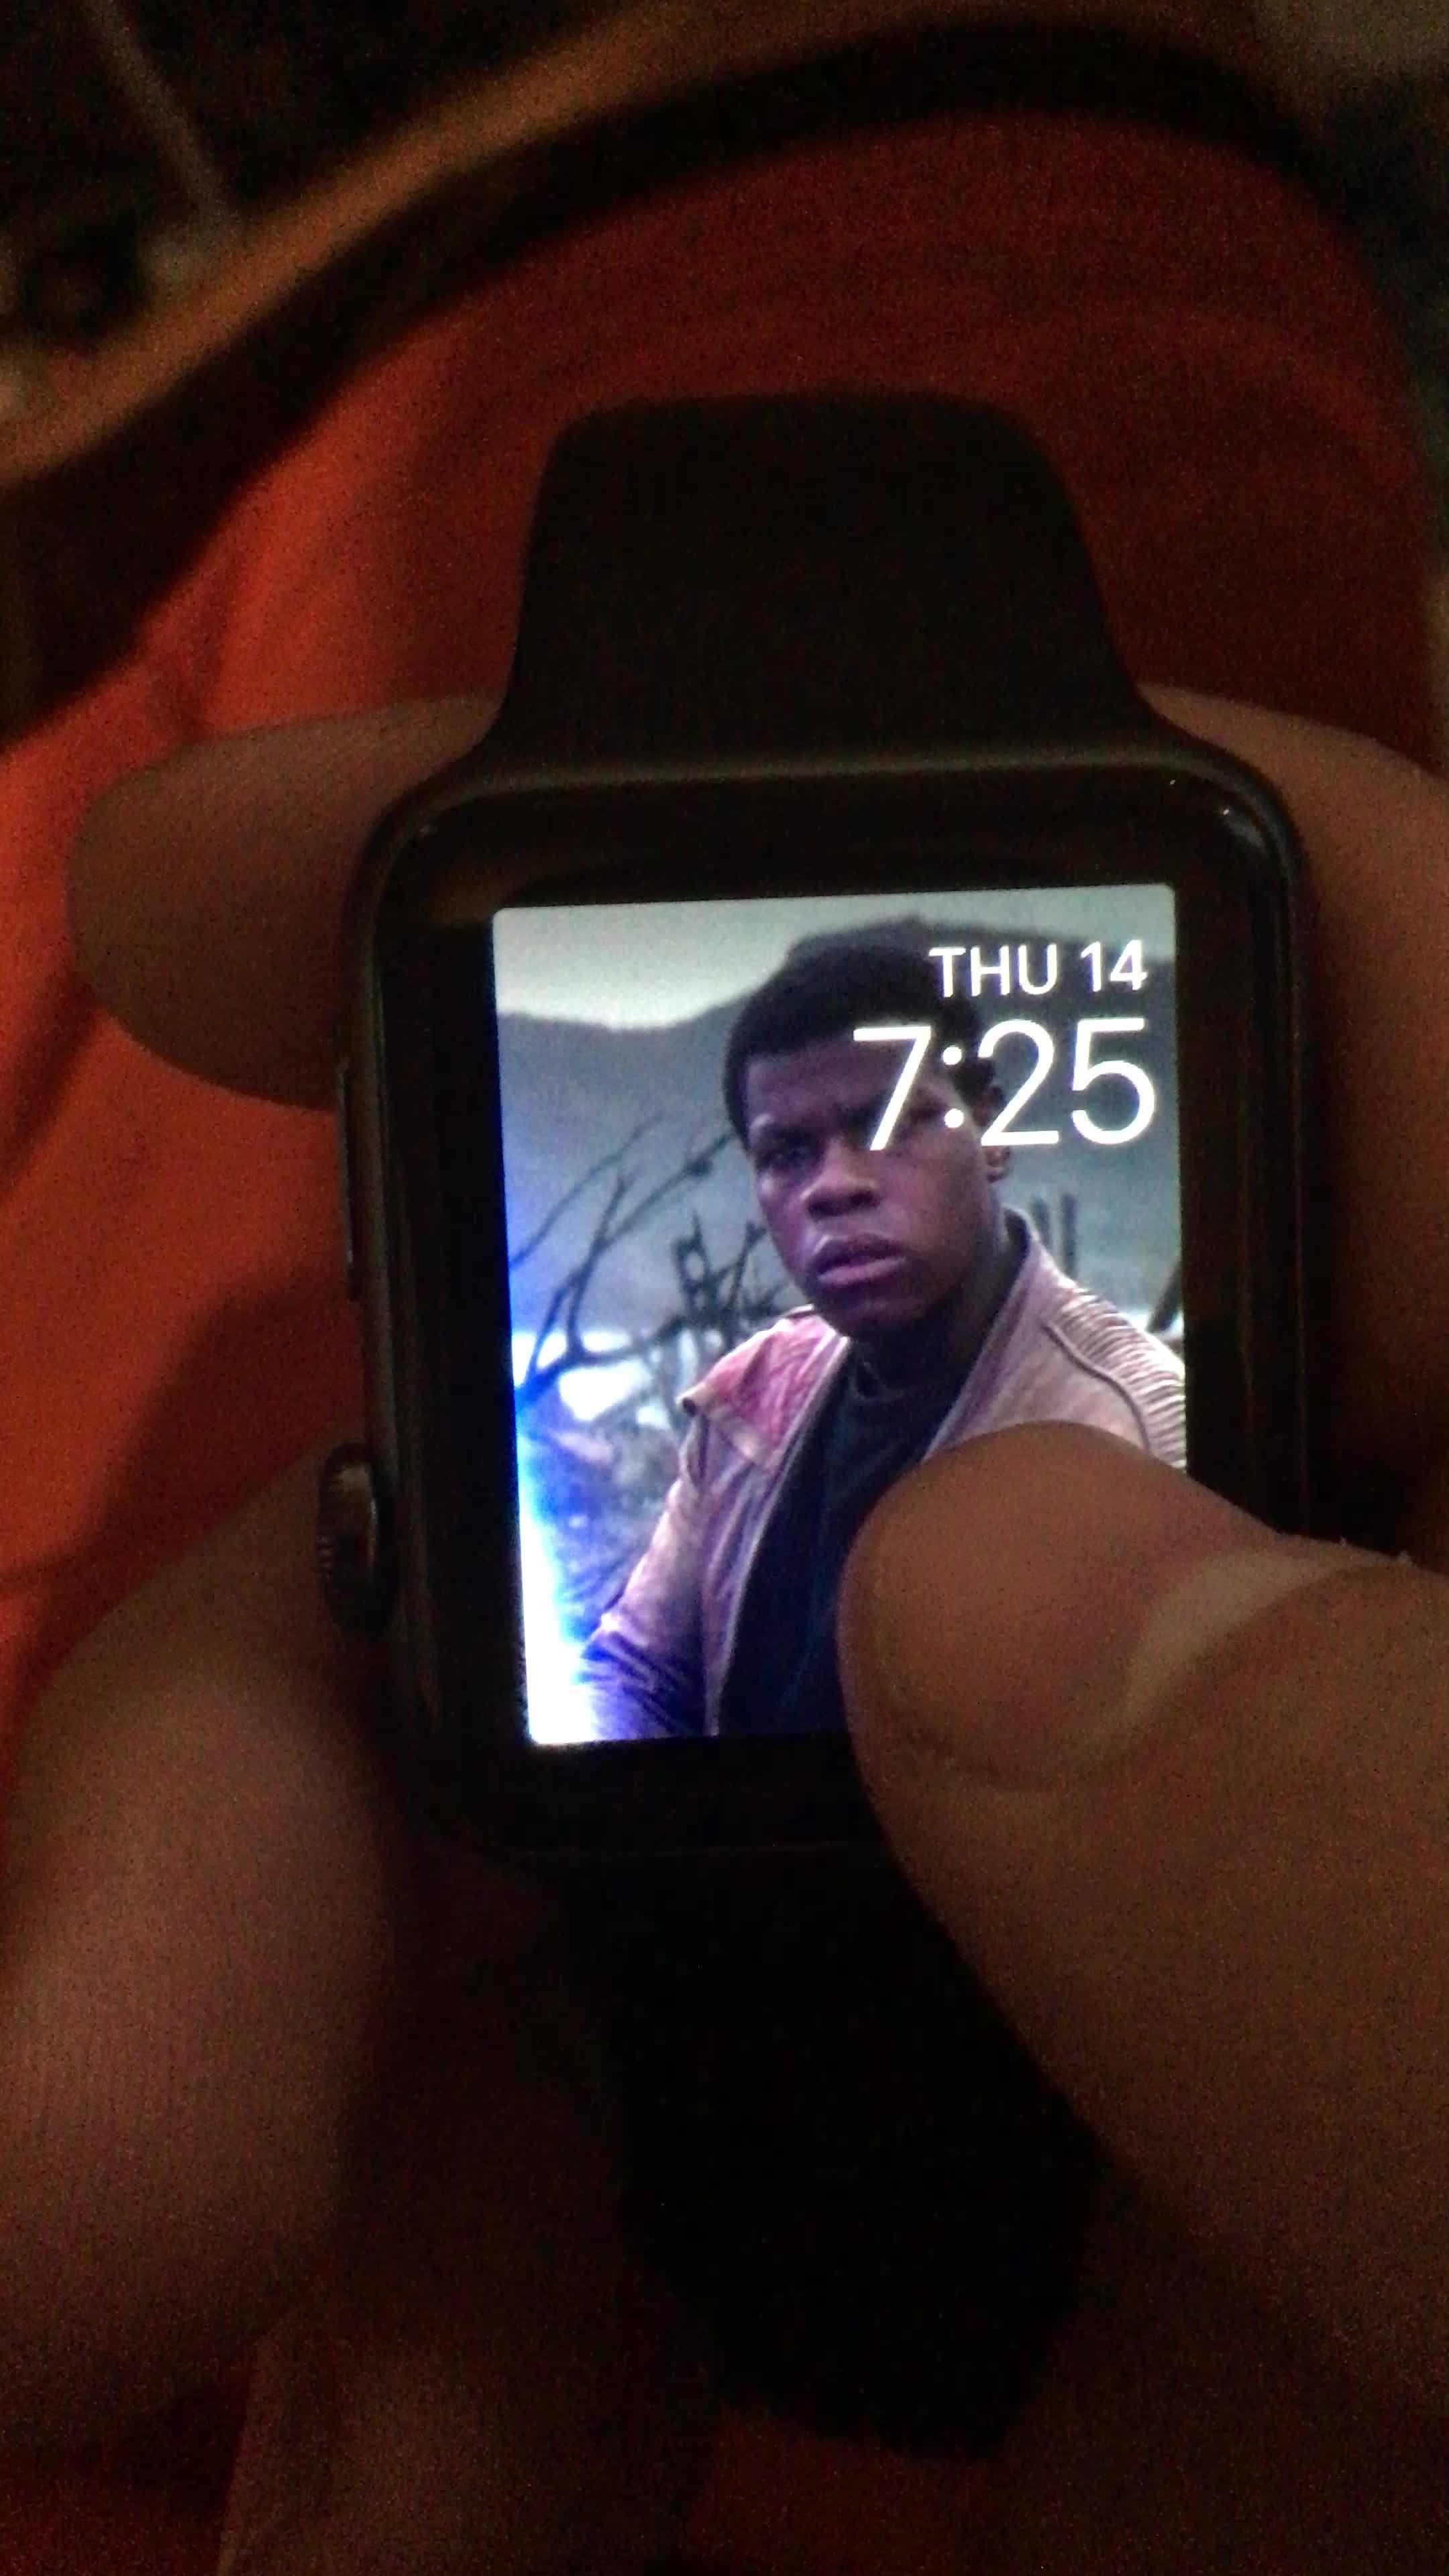 applewatch, iphone, TR-8R Live Photo AW GIFs